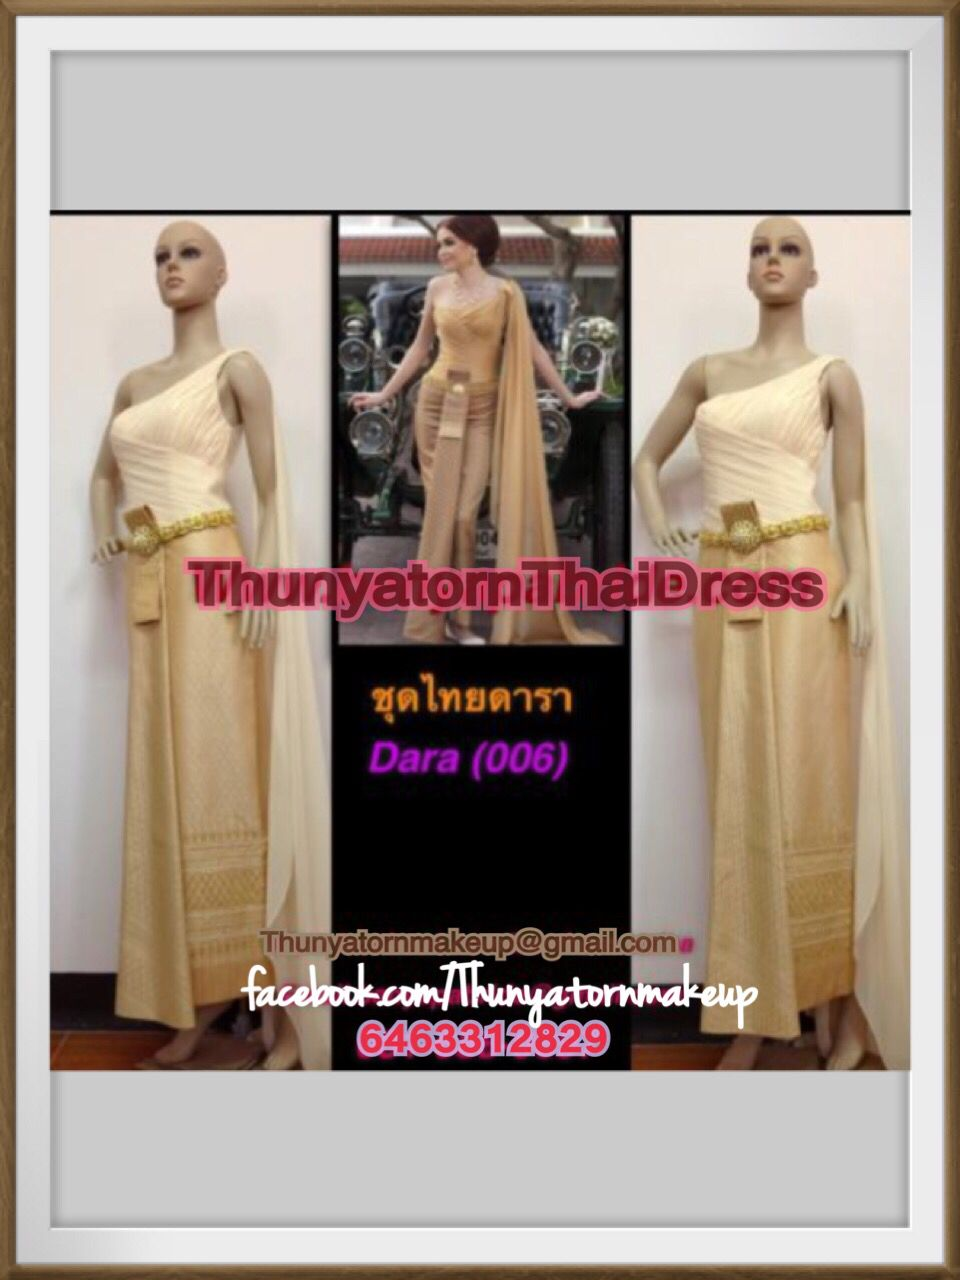 Thai Style Dress Rent And Sale At NYC Thai Traditional/wedding Dresses And  Suits, Made To Order From Top Quality Silk Fabrics.